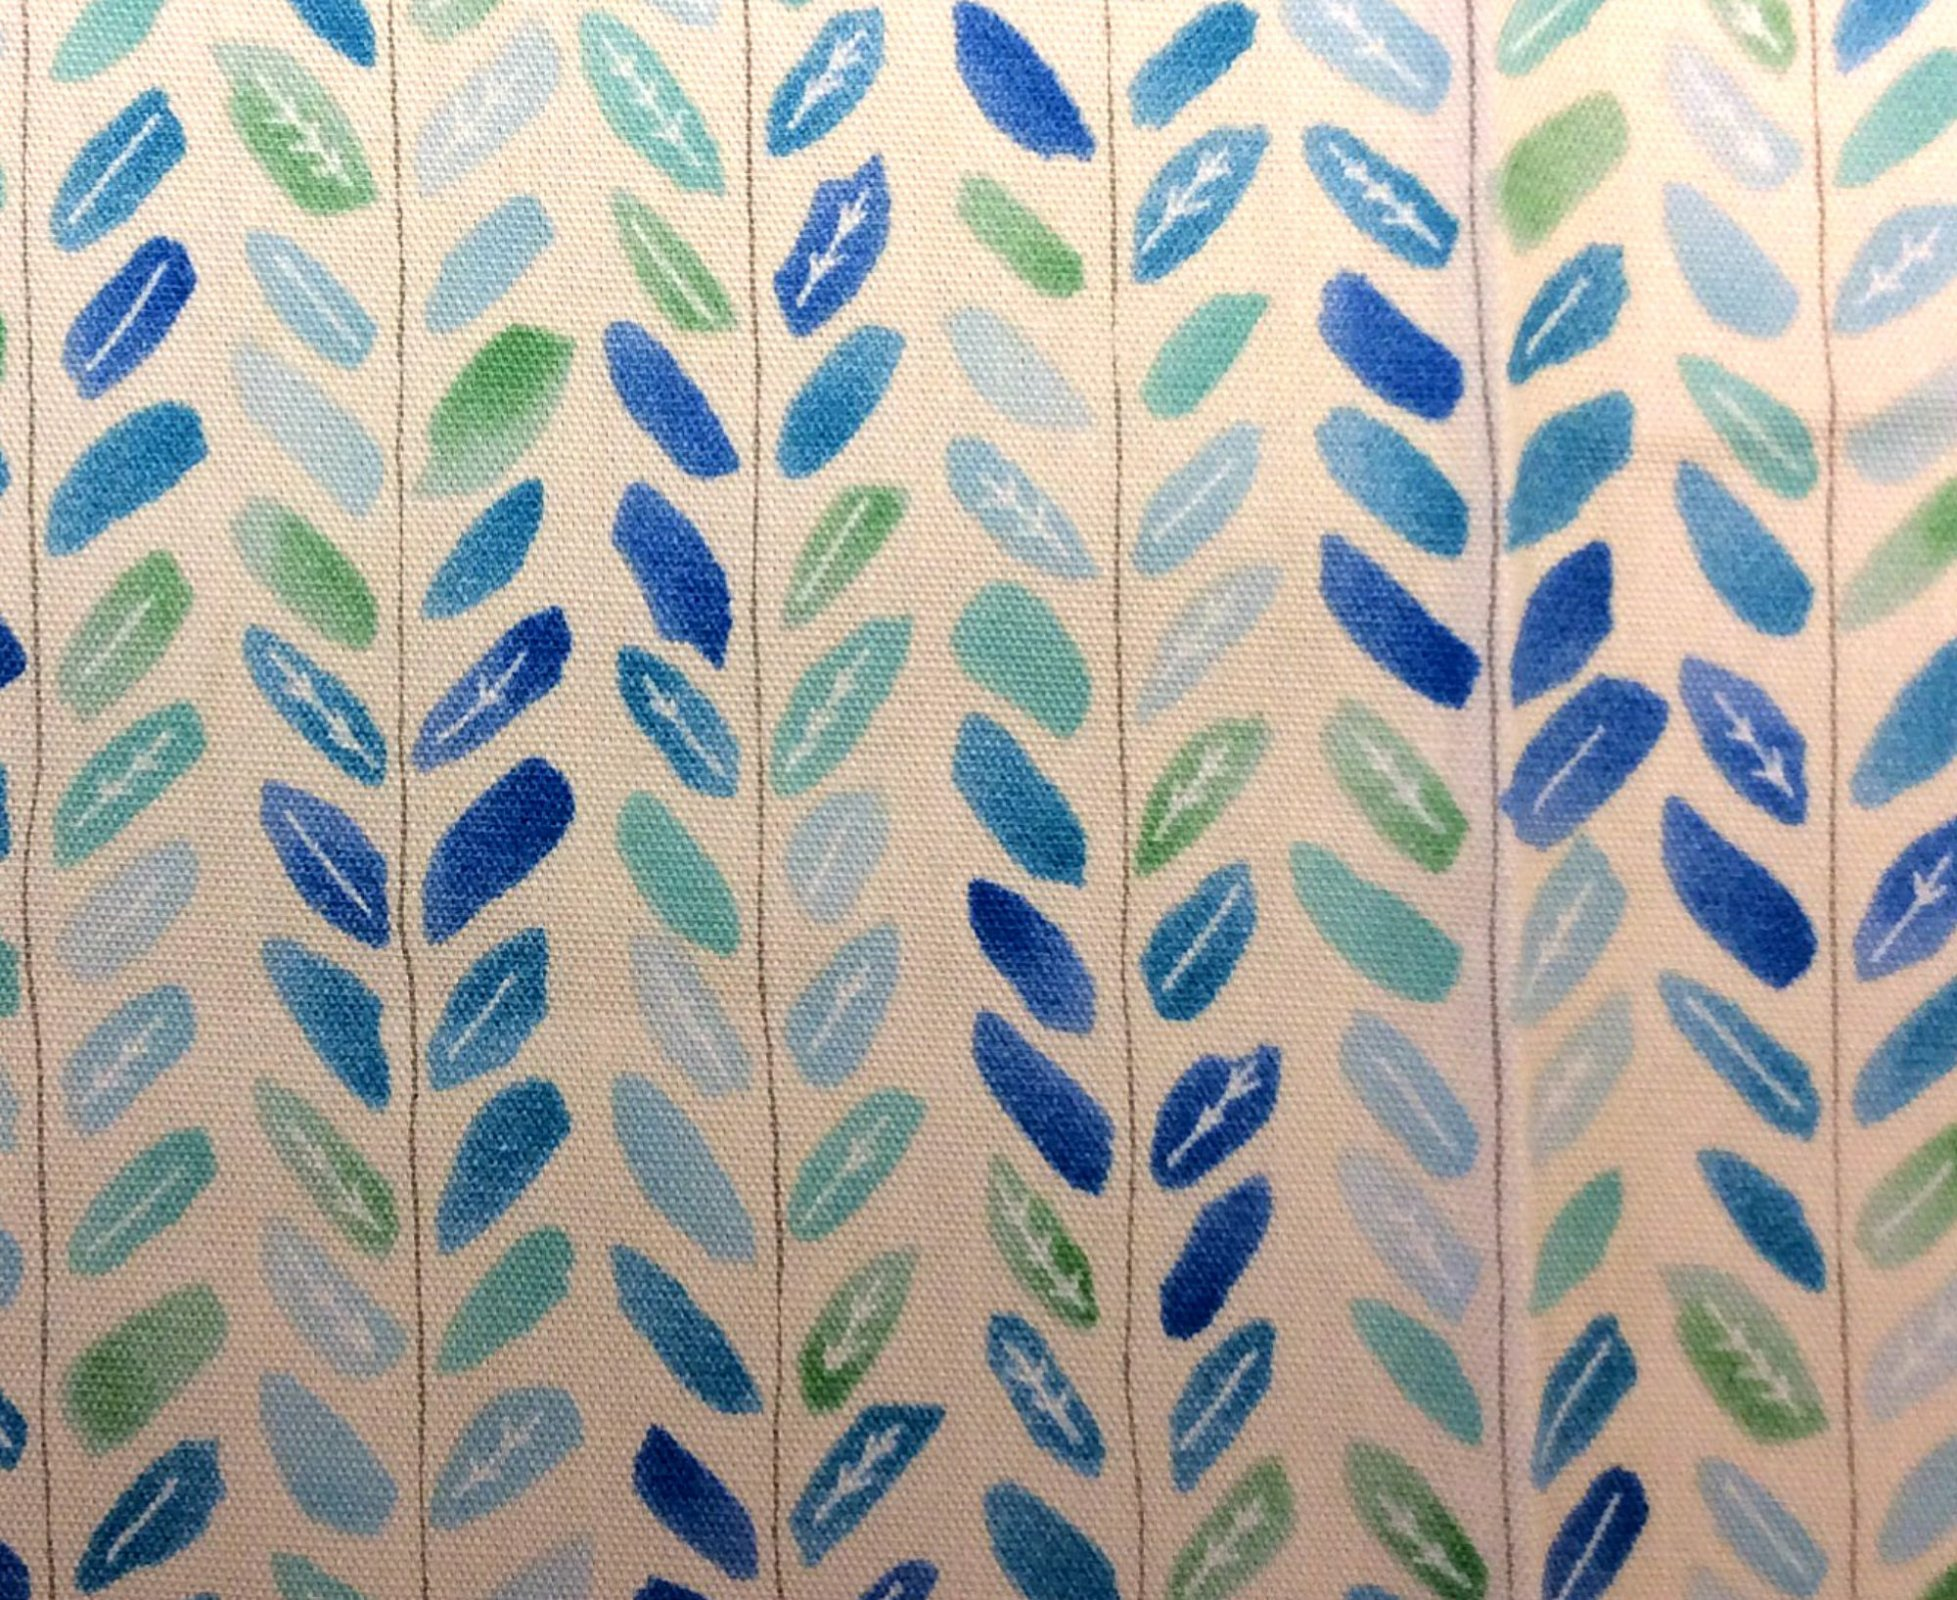 Japanese Asian Watercolor Leaves Little Leaf Shades of Blue Oxford Cloth Cotton Fabric QH34